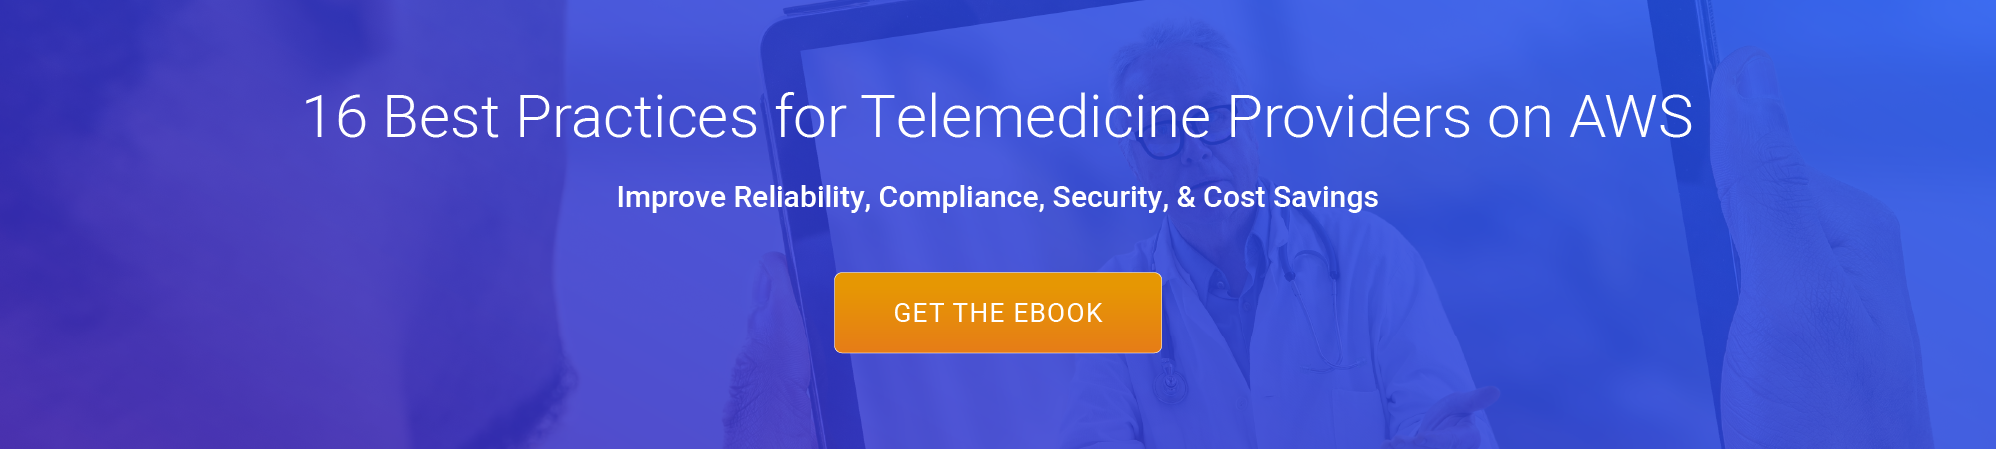 telemedicine providers on aws, best practices security reliability compliance performance cost savings